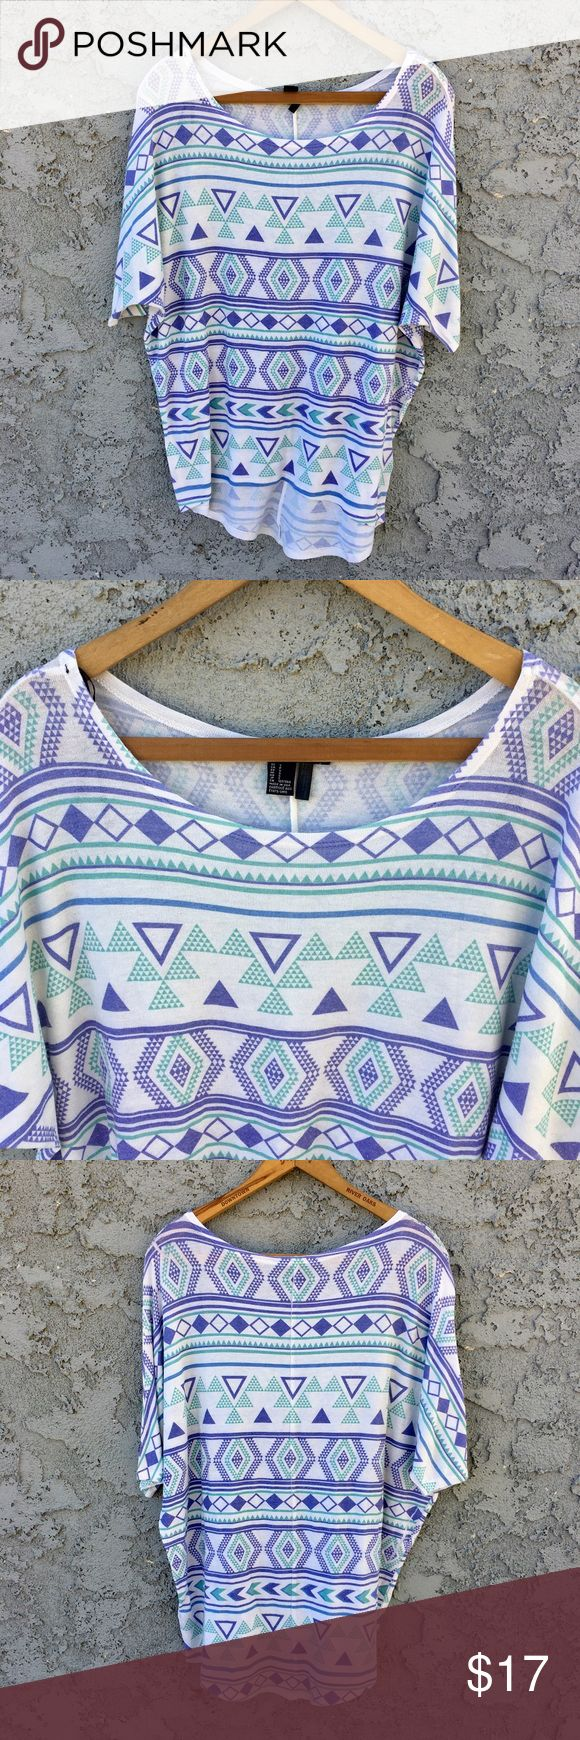 Aztec Print Top Forever 21 aztec print top. Slouchy, comfy fit. White color with teal and purple pattern. Great with leggings! In great condition!  ✨ 20% Bundle Discount  ✨ Accepting Reasonable Offers Forever 21 Tops